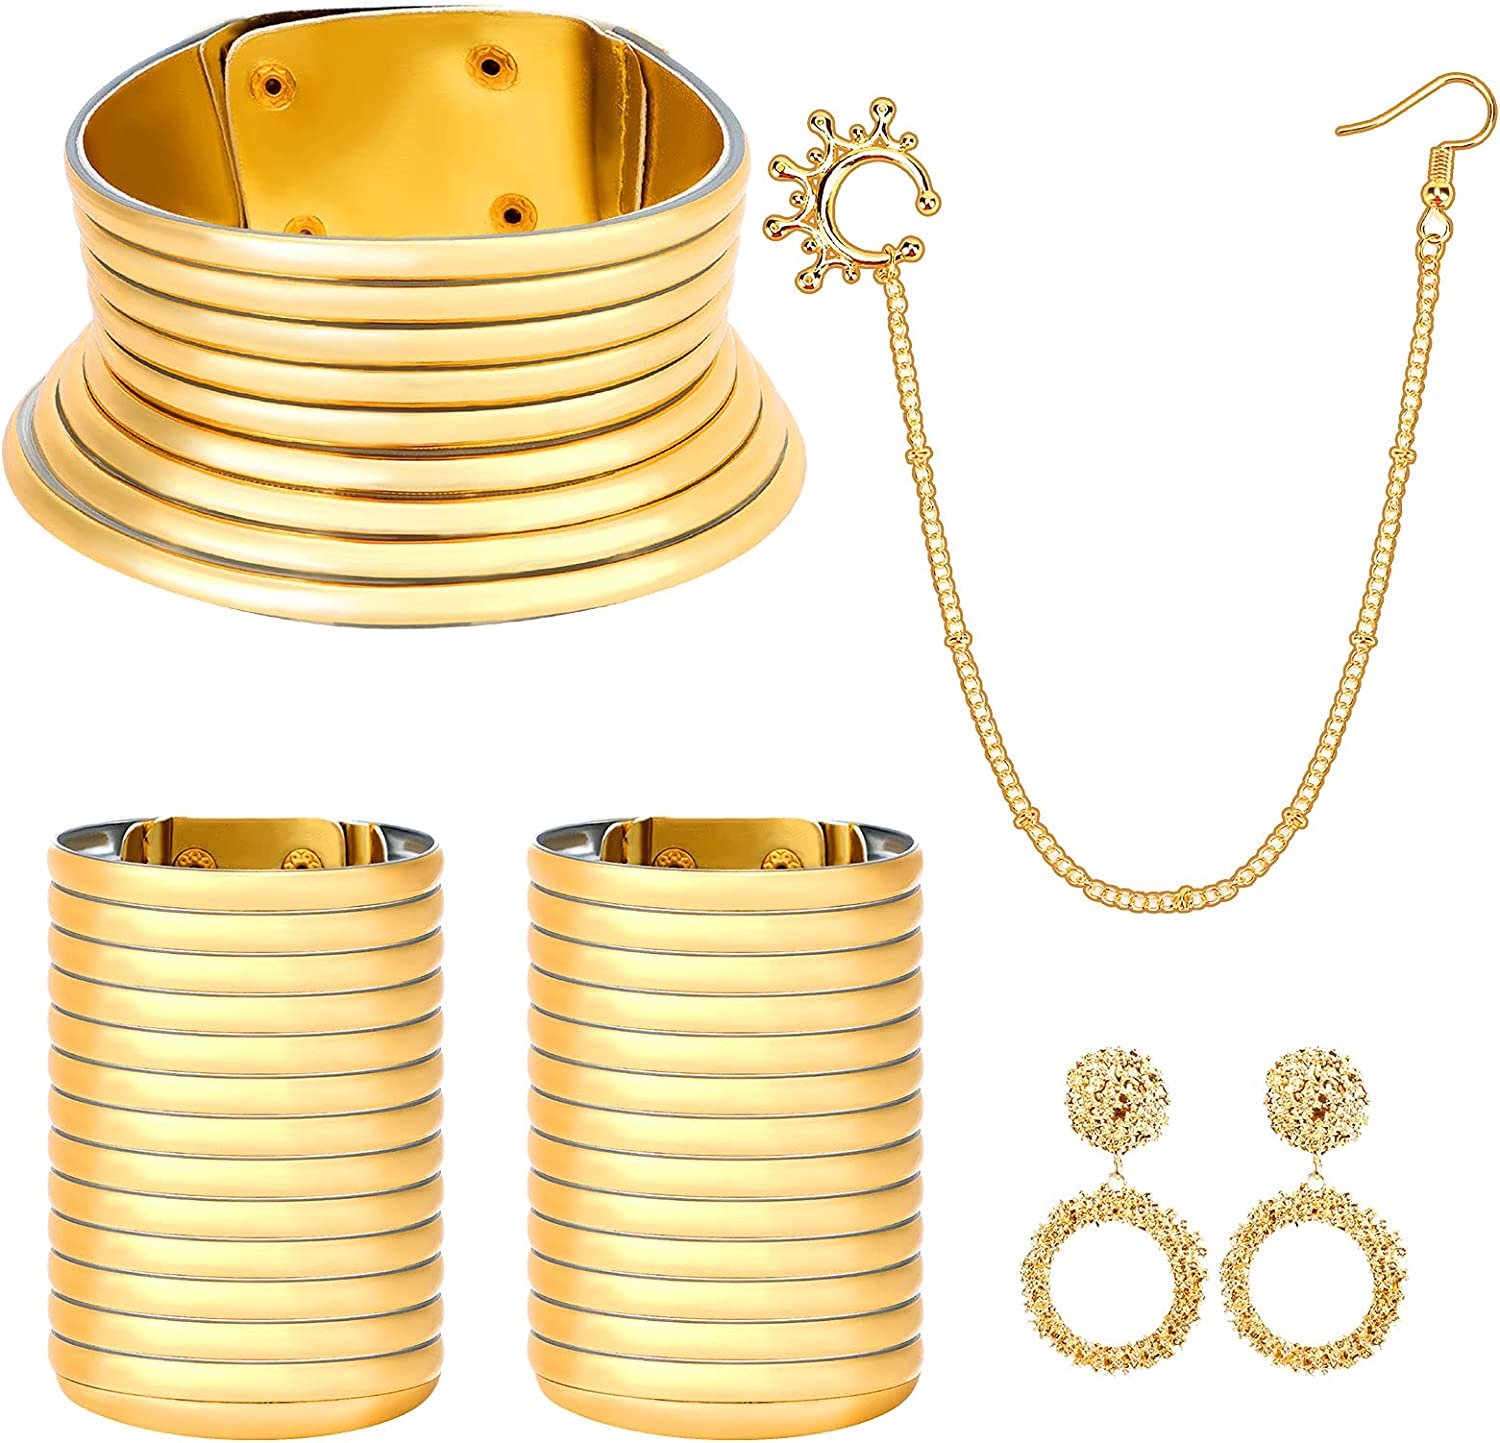 5PCS African National Gold Flamboyant Jewelry Set Adjustable Vintage African Choker Necklace, Resin Snap Bracelet, Nose Rings Hoop Chain, Gold Hoop Earrings Jewelry for Women Girls